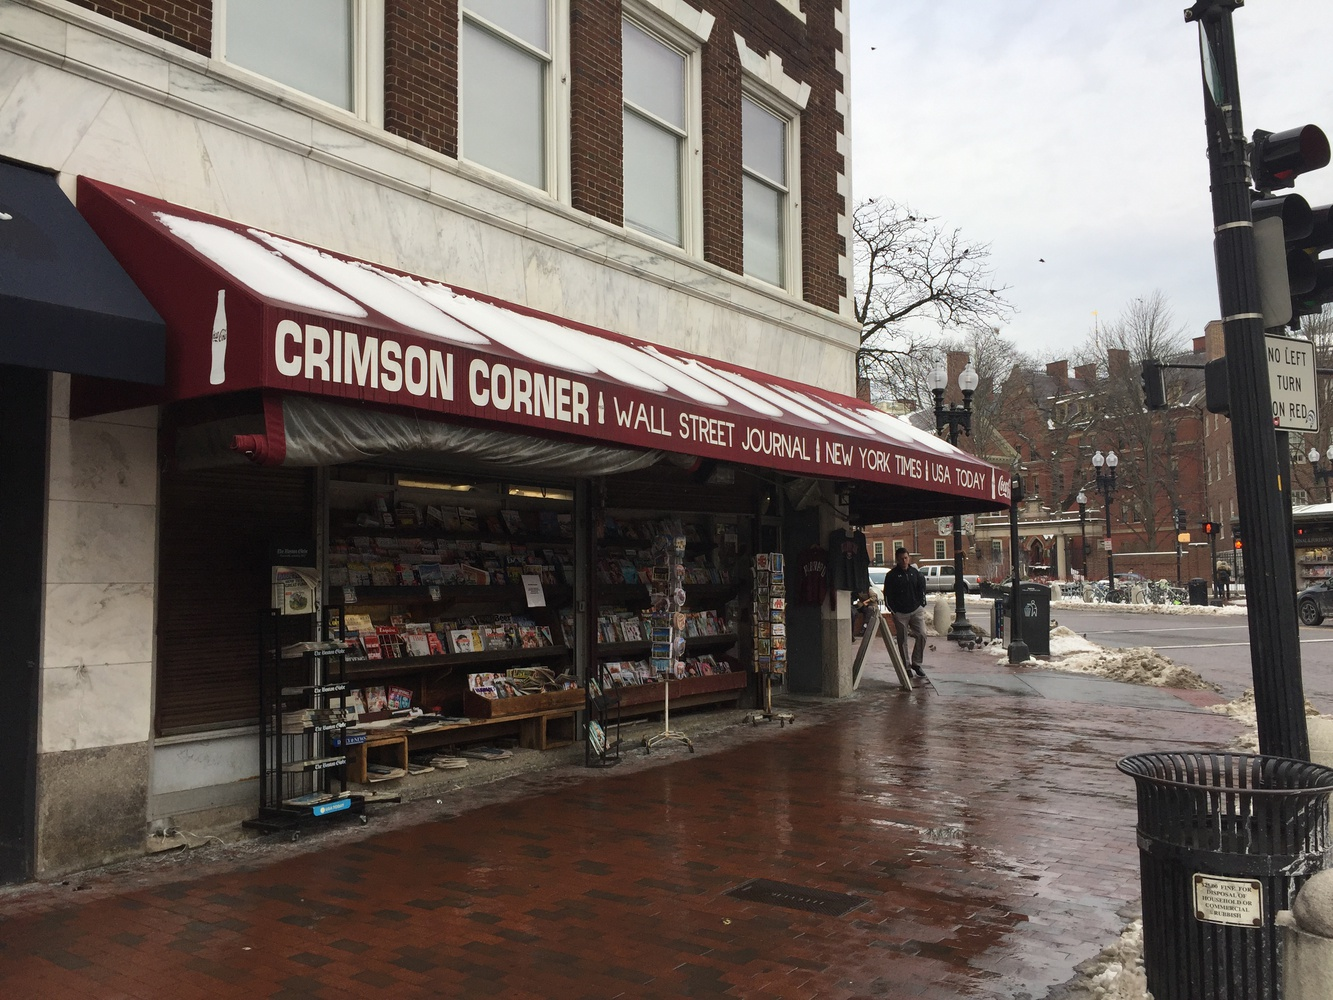 Crimson Corner, a family-owned newsstand and souvenir shop, may close after 54 years in Harvard Square.